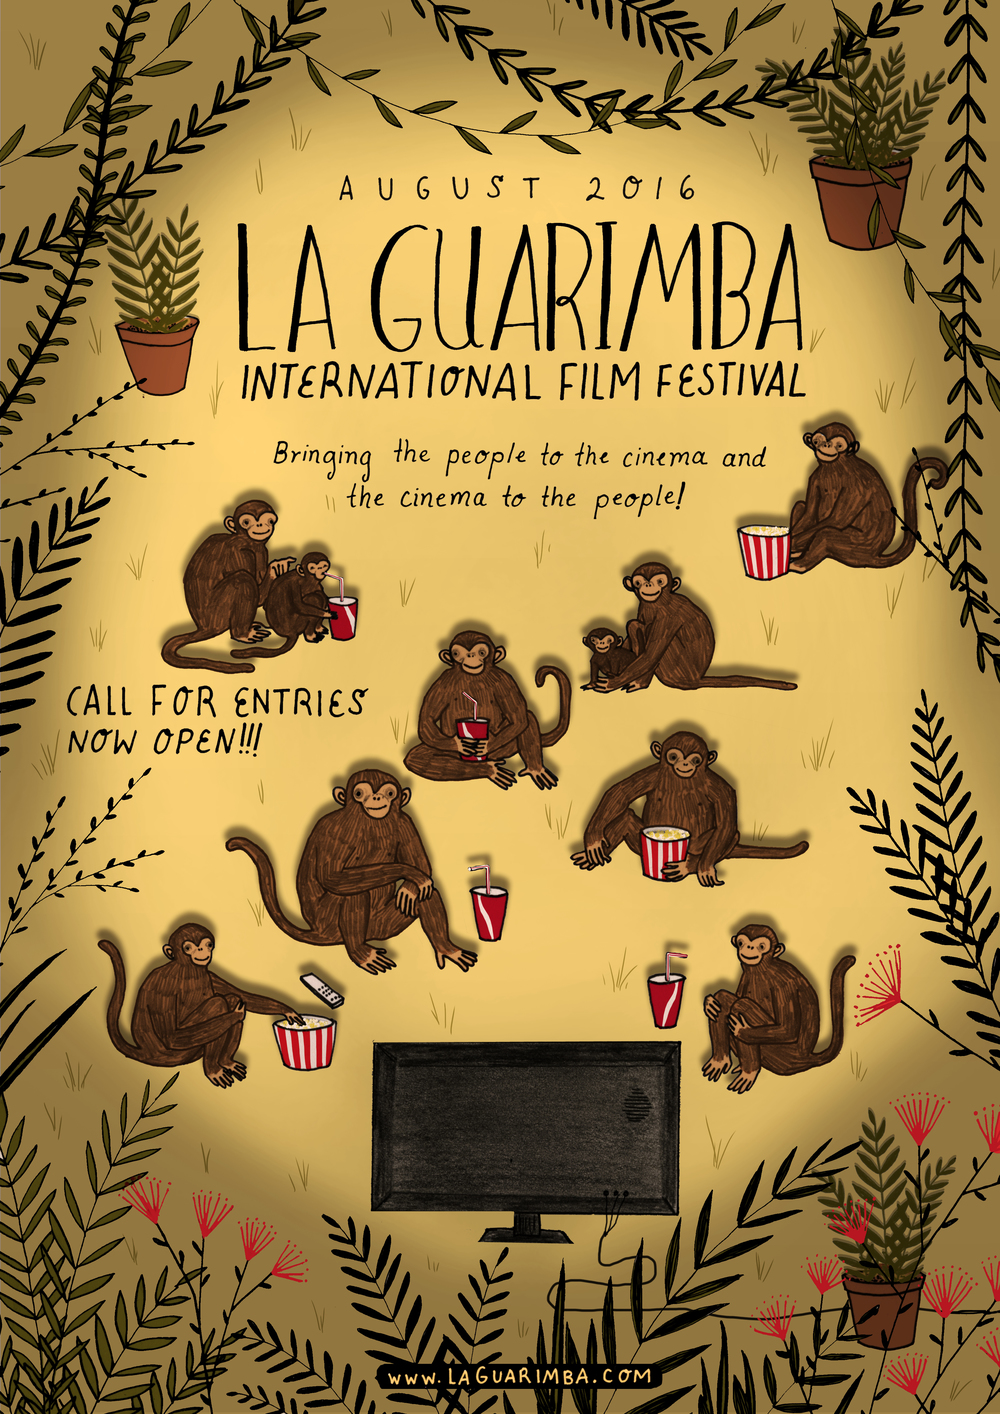 La Guarimba International Film Festival 2016